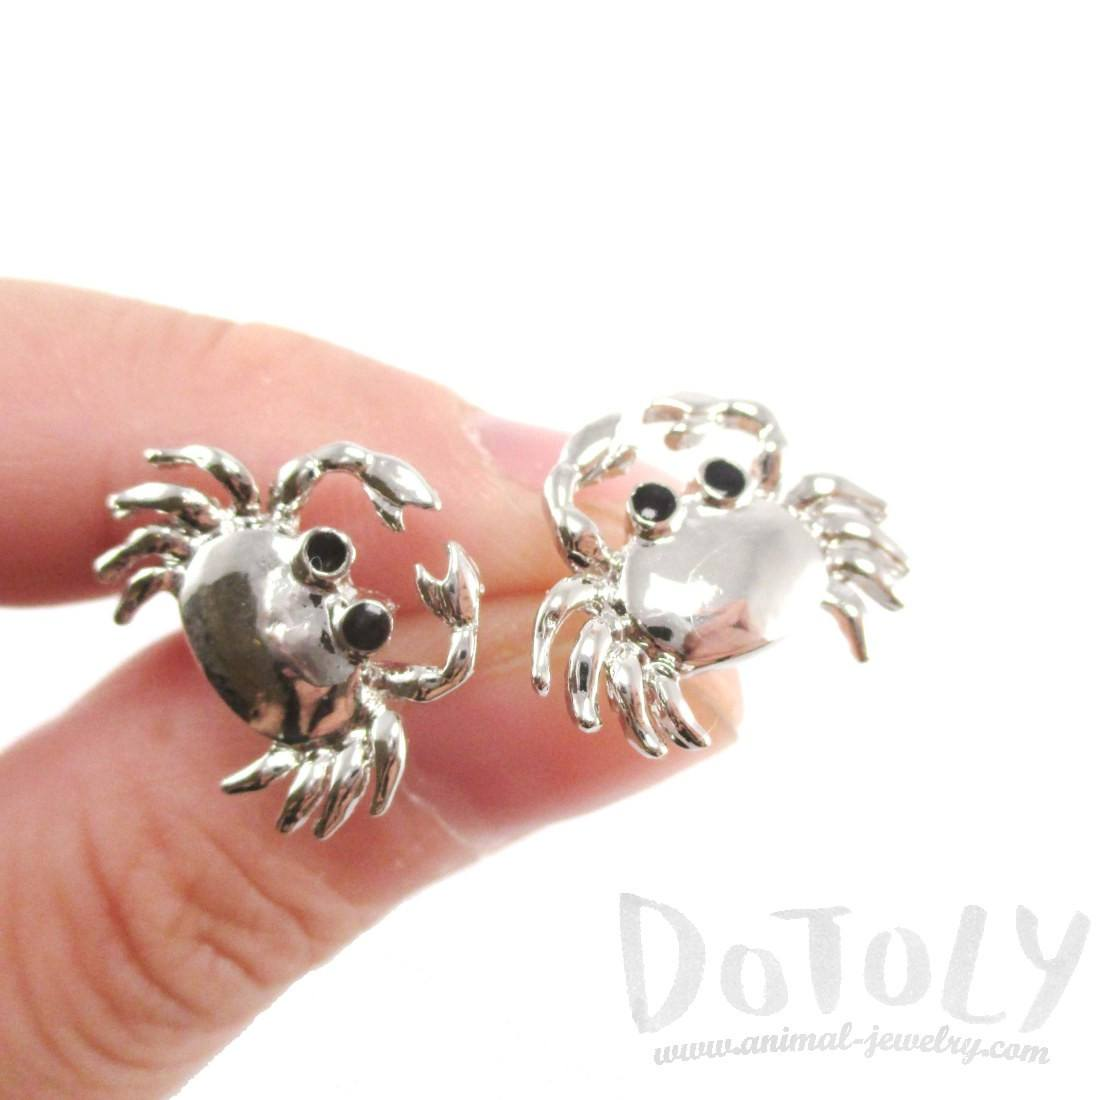 Cancer Zodiac Crab Shaped Stud Earrings in Silver